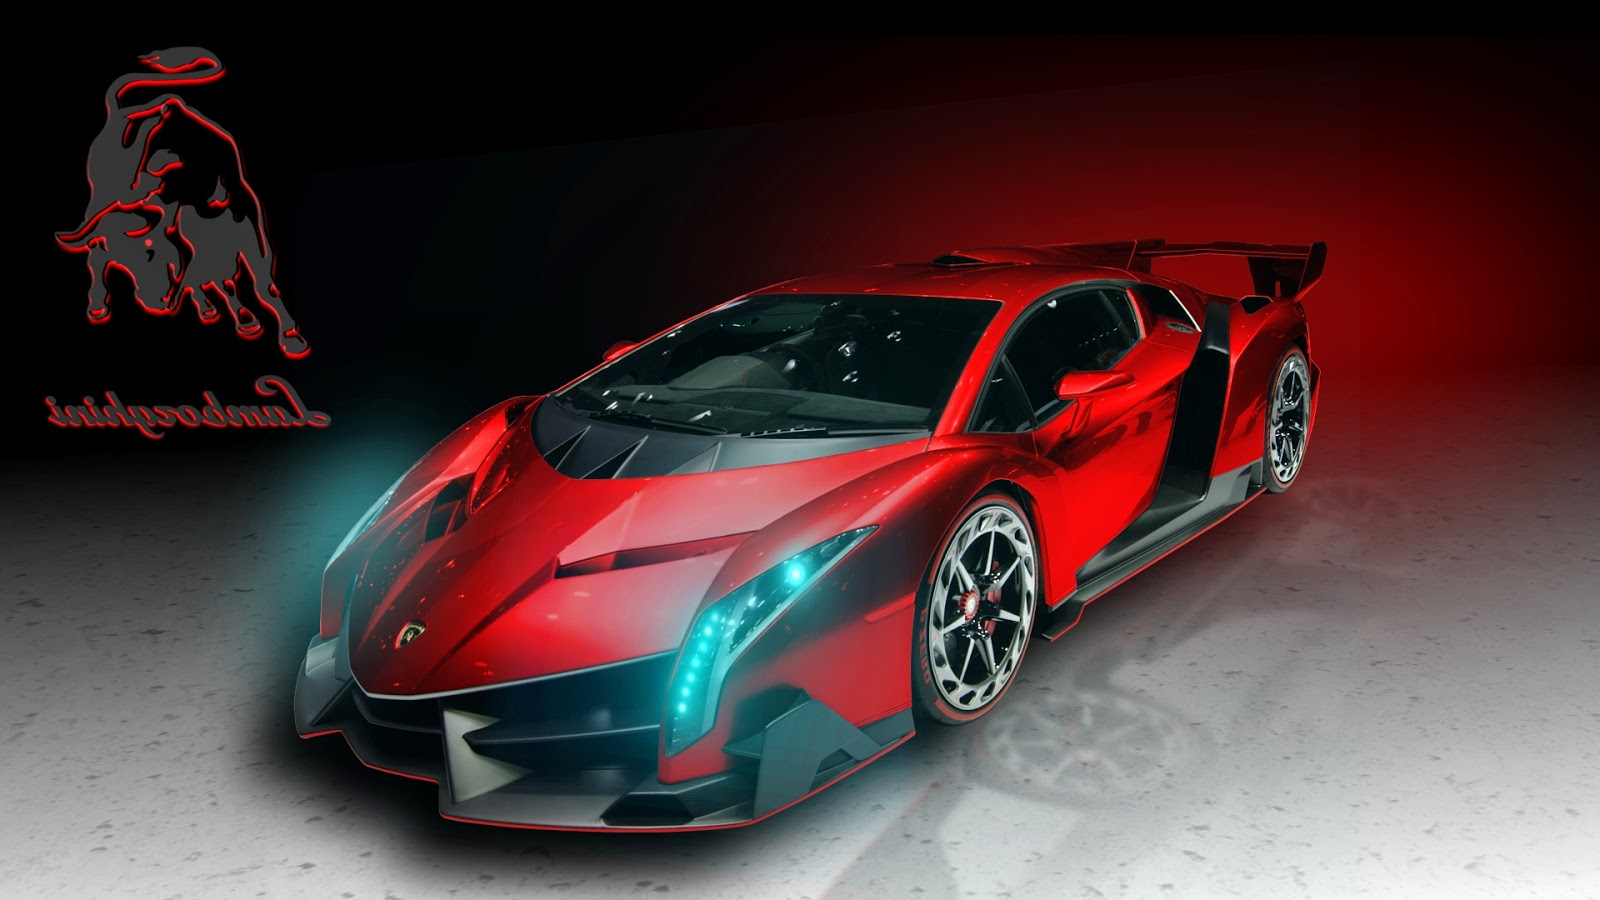 Download Lamborghini Red Cars Wallpaper Full Size